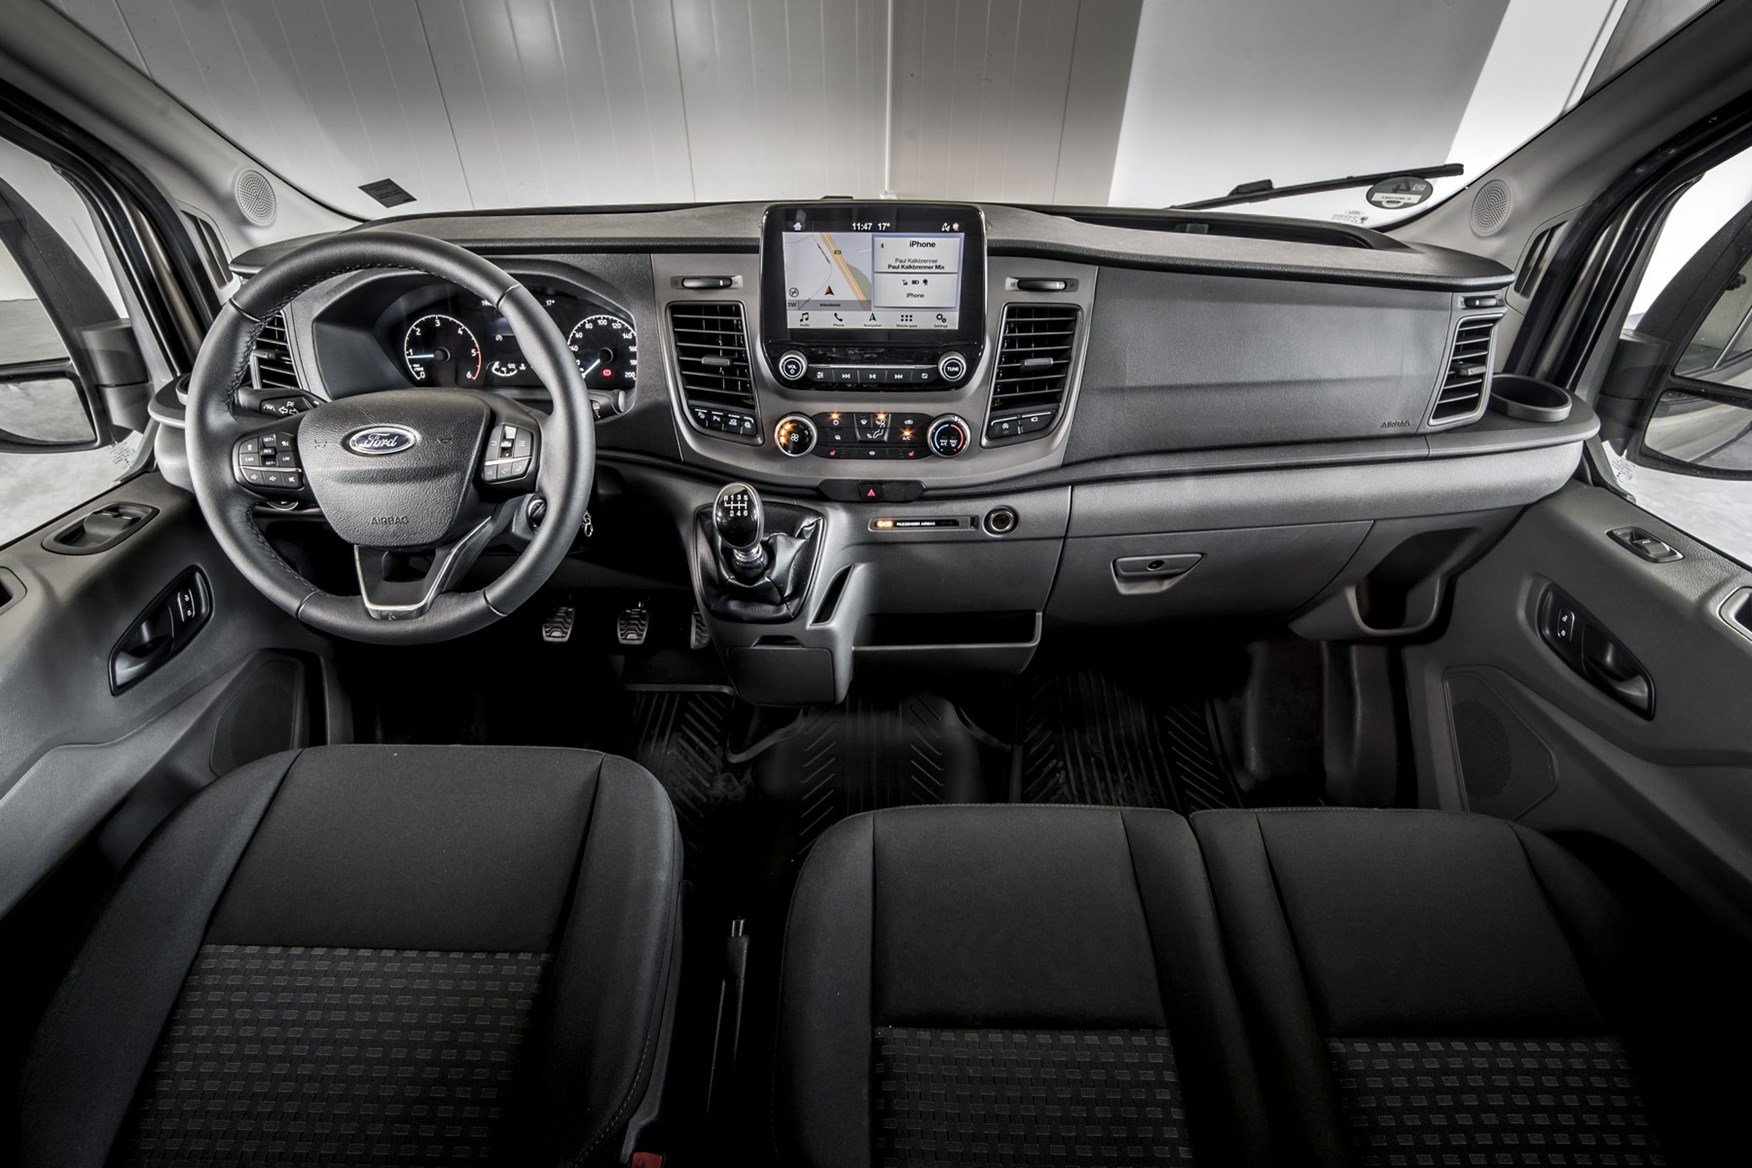 Ford Transit review - 2019 facelift model, dashboard, full view